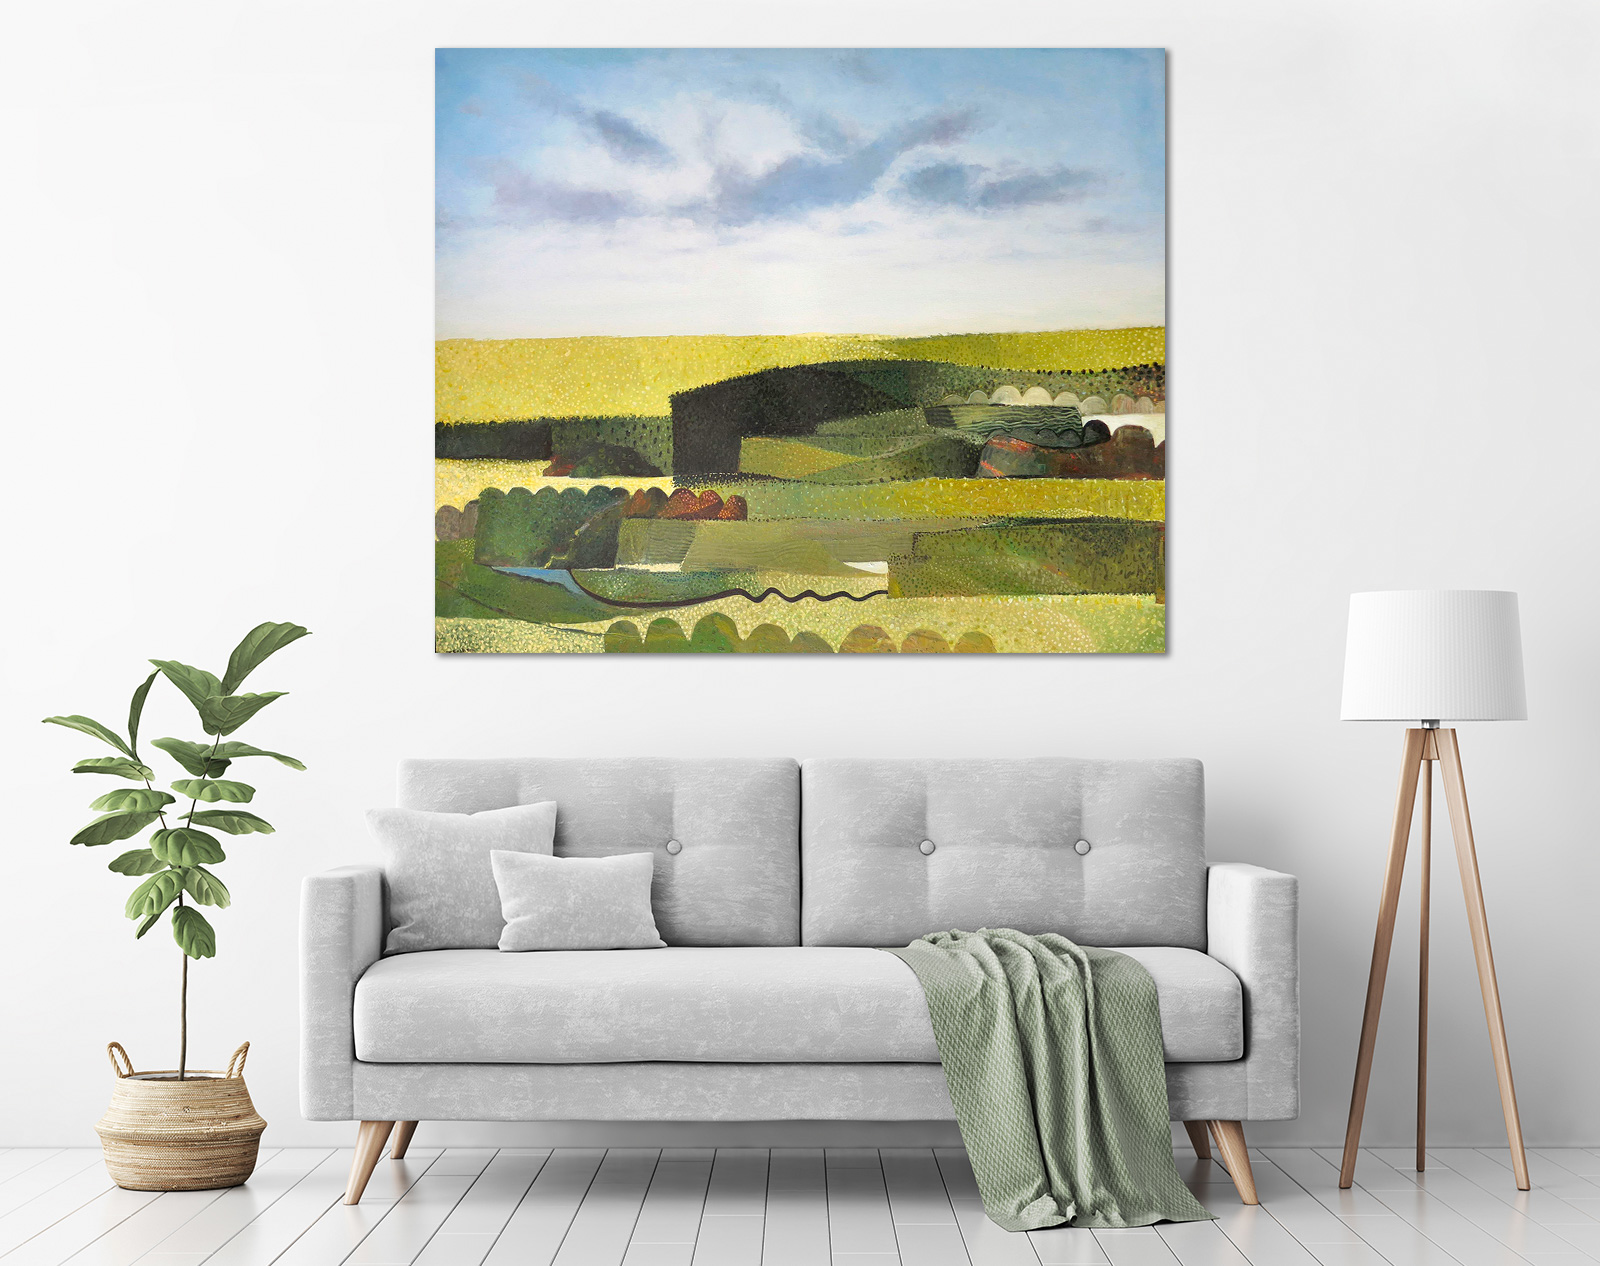 John Graham - 'Summer - Abstracted Landscape' in a room